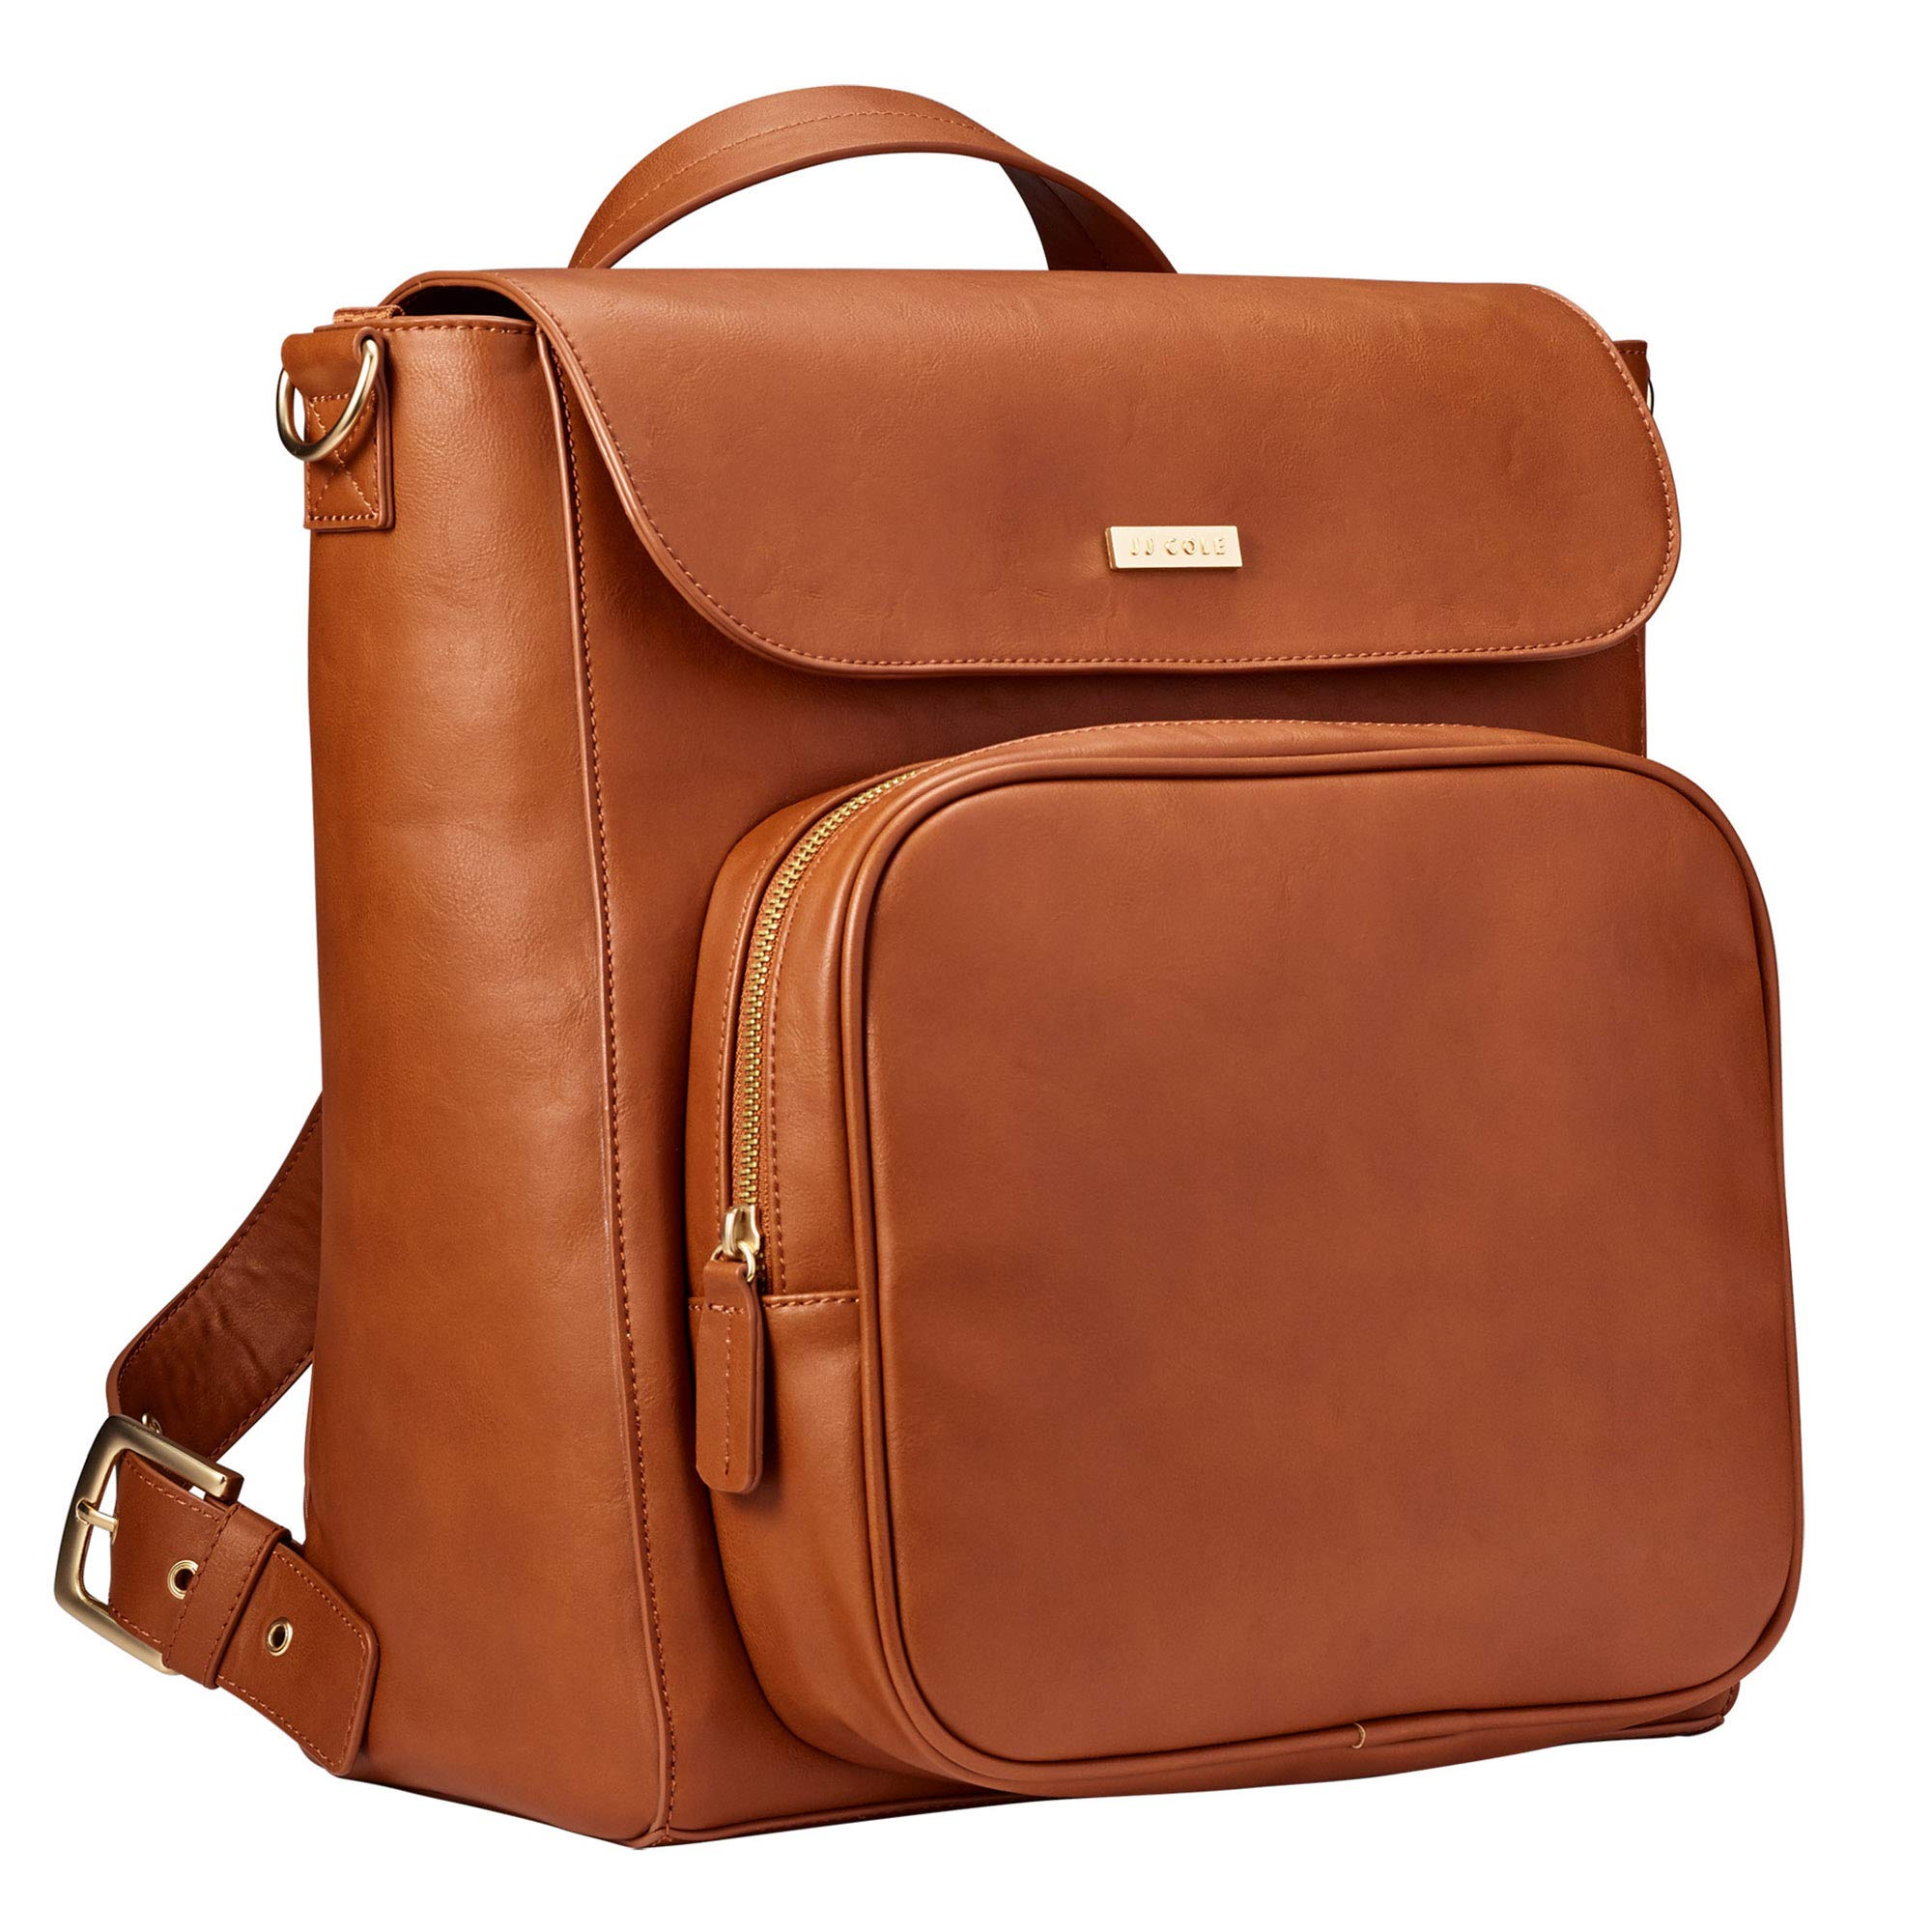 JJ Cole - Brookmont Diaper Bag, Gender Neutral Large Capacity Backpack and Tote for Baby Supplies with Stroller Clips and Changing Pad, Cognac